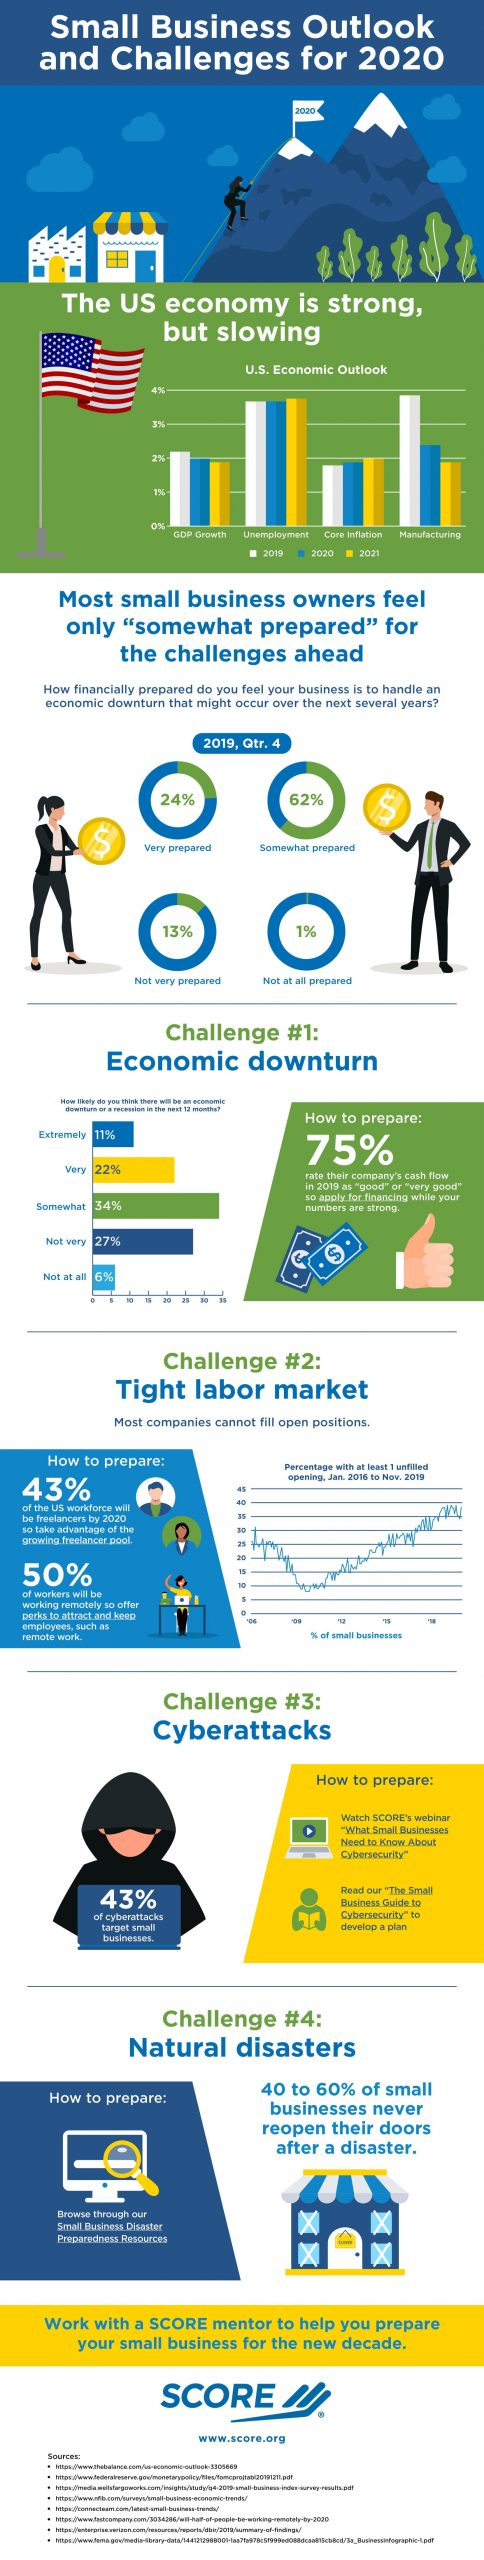 Small Business Outlook 2020